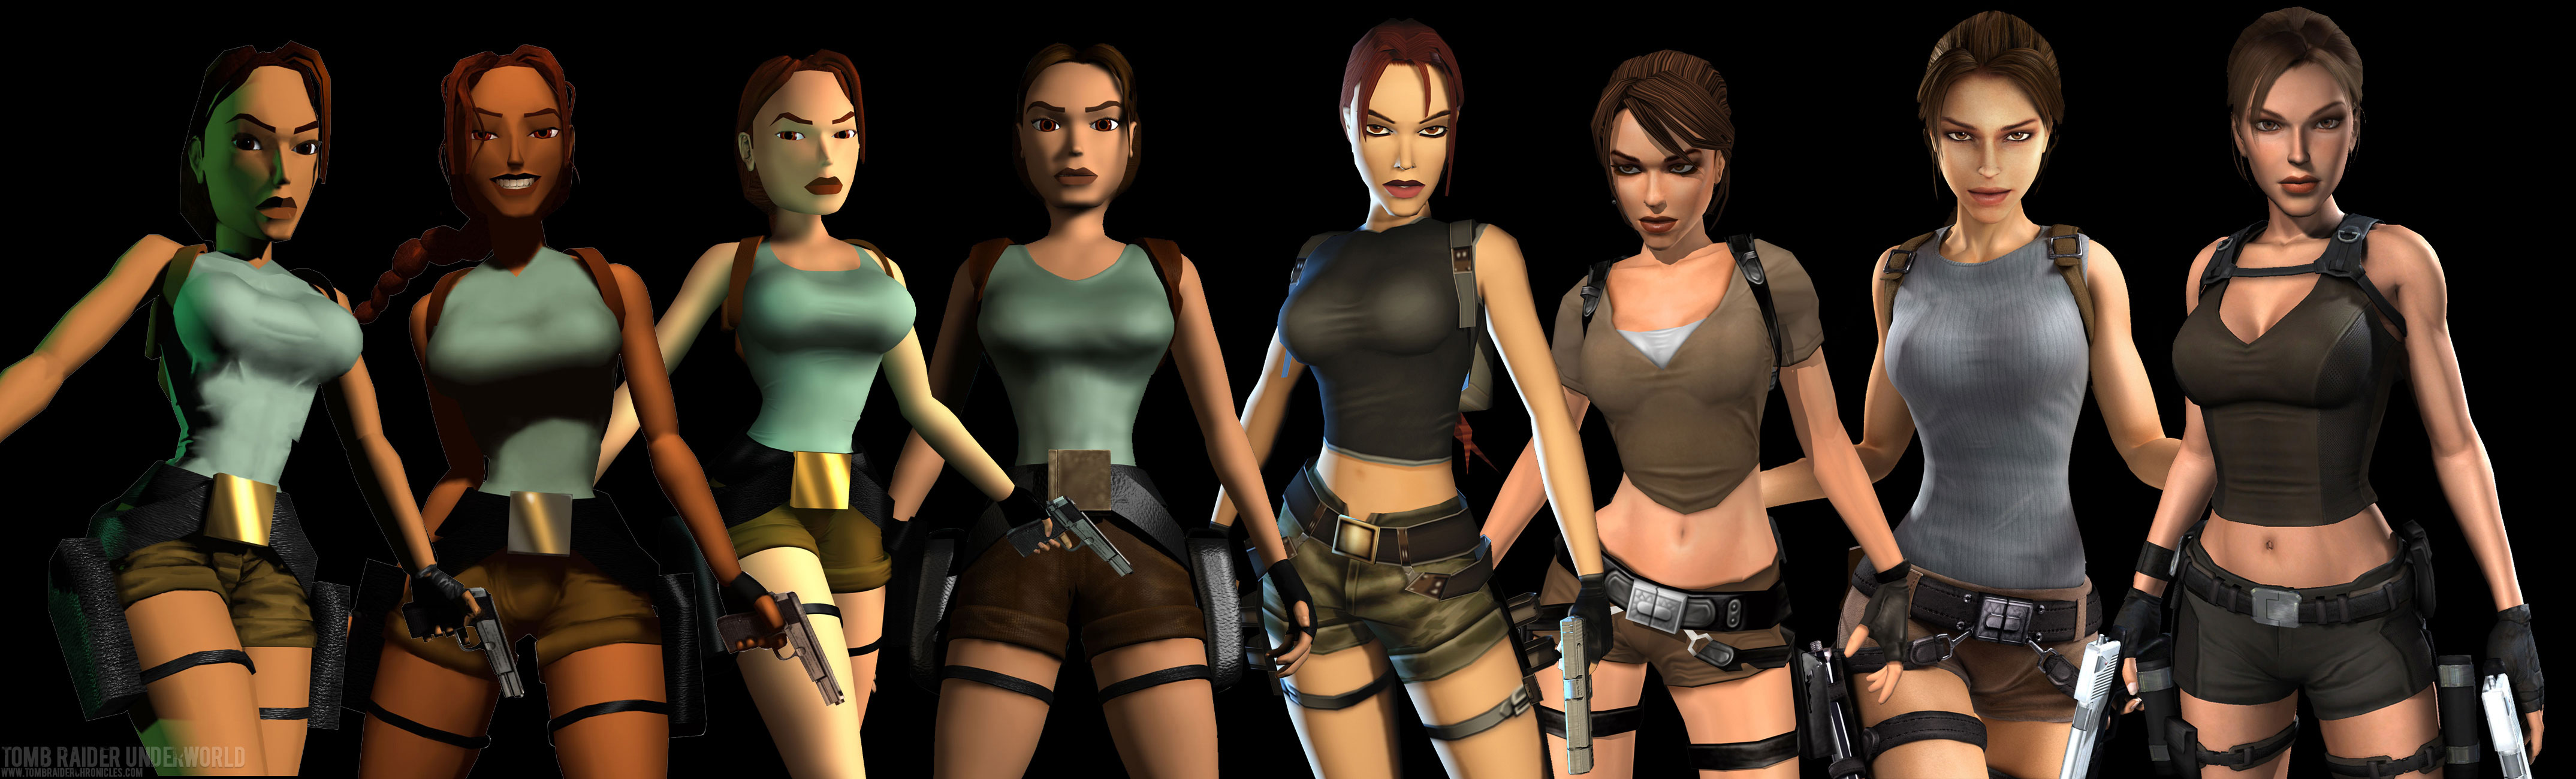 Lara Over The Years